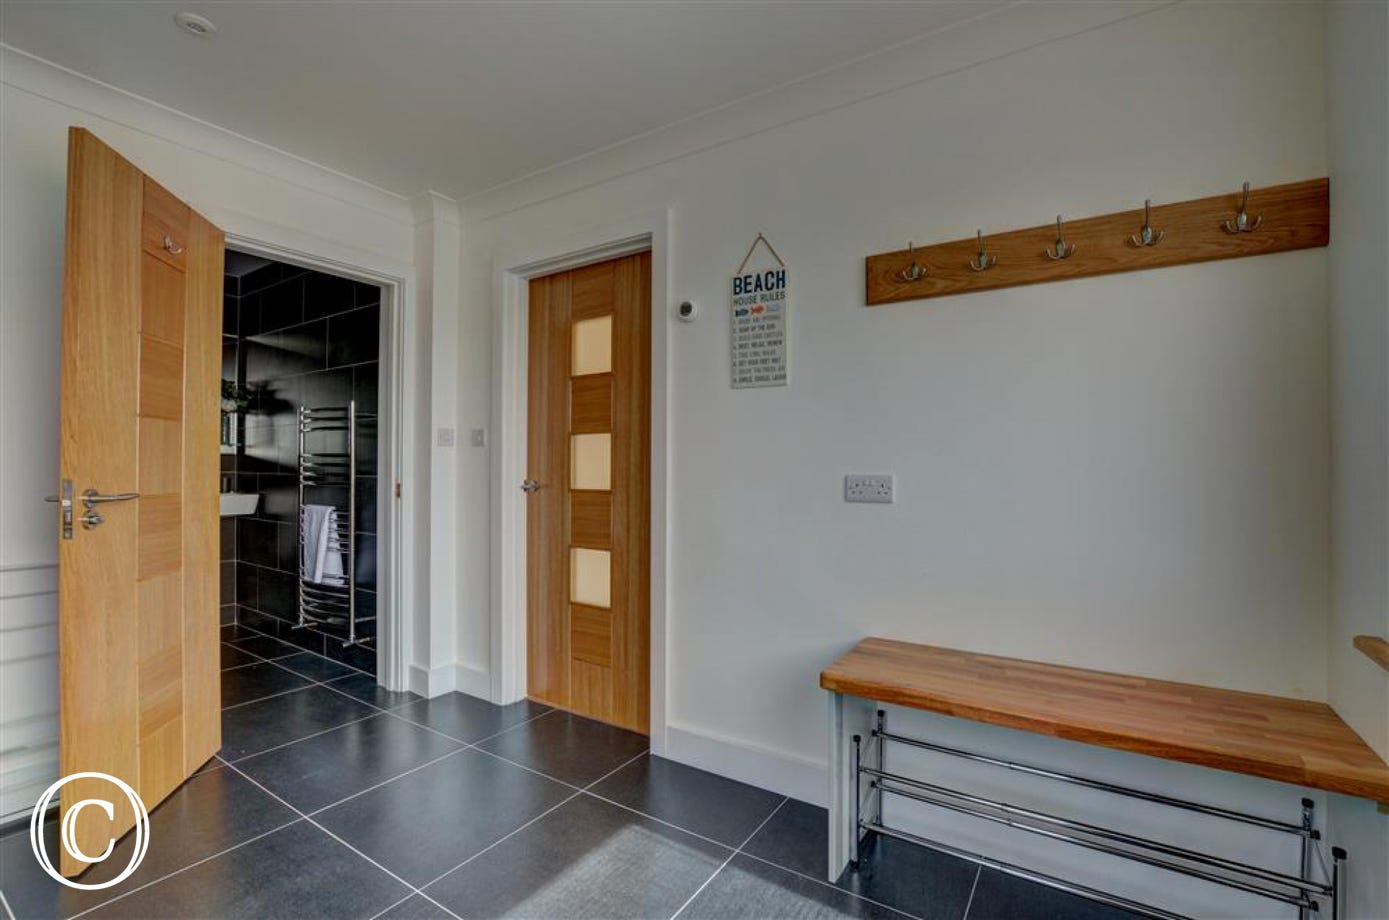 The property also offers a useful utility room